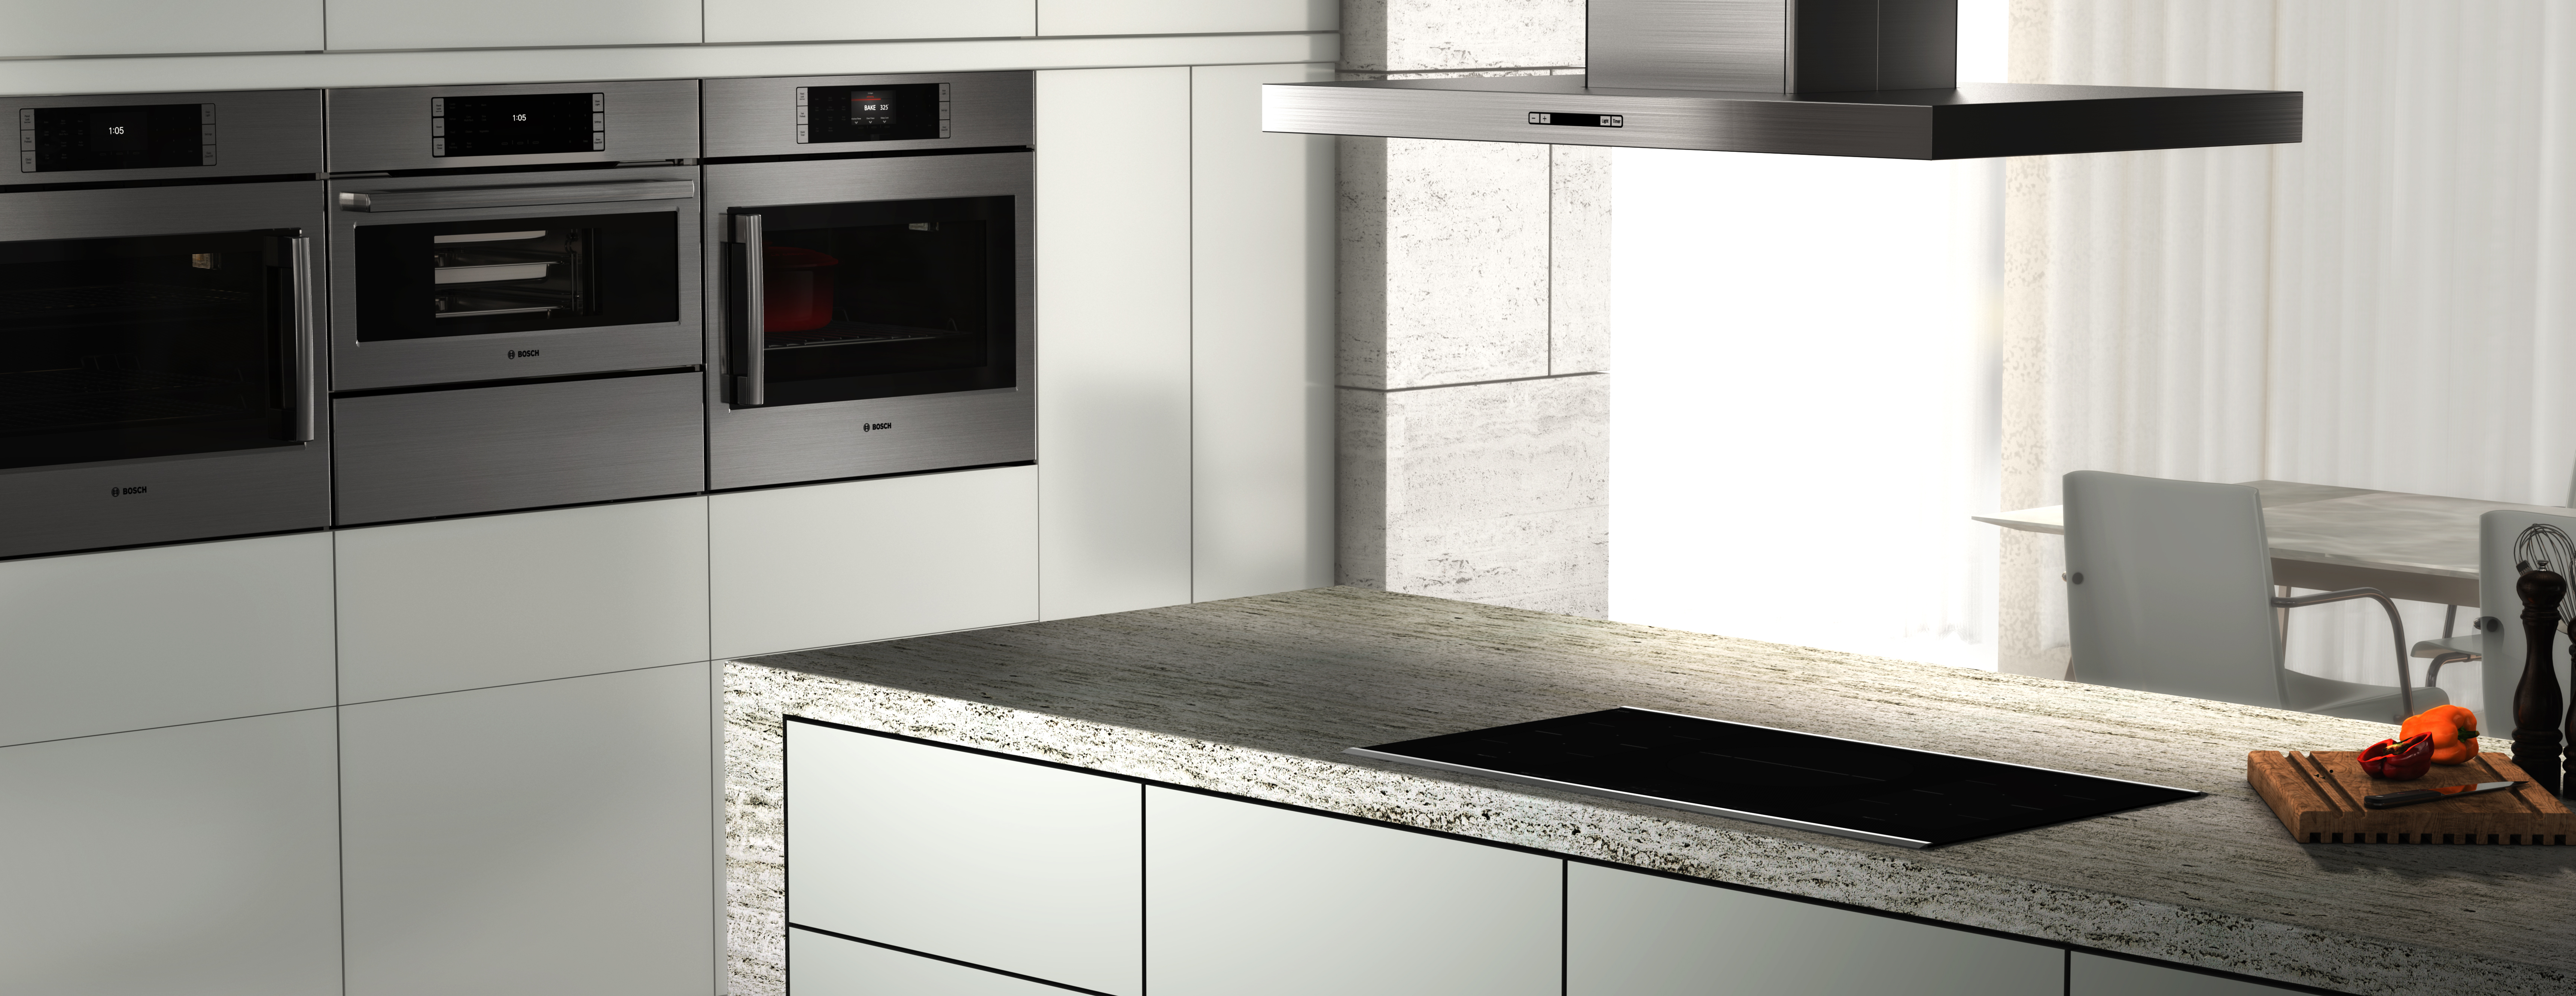 - Bosch Benchmark Island Hood Induction Cooktop -